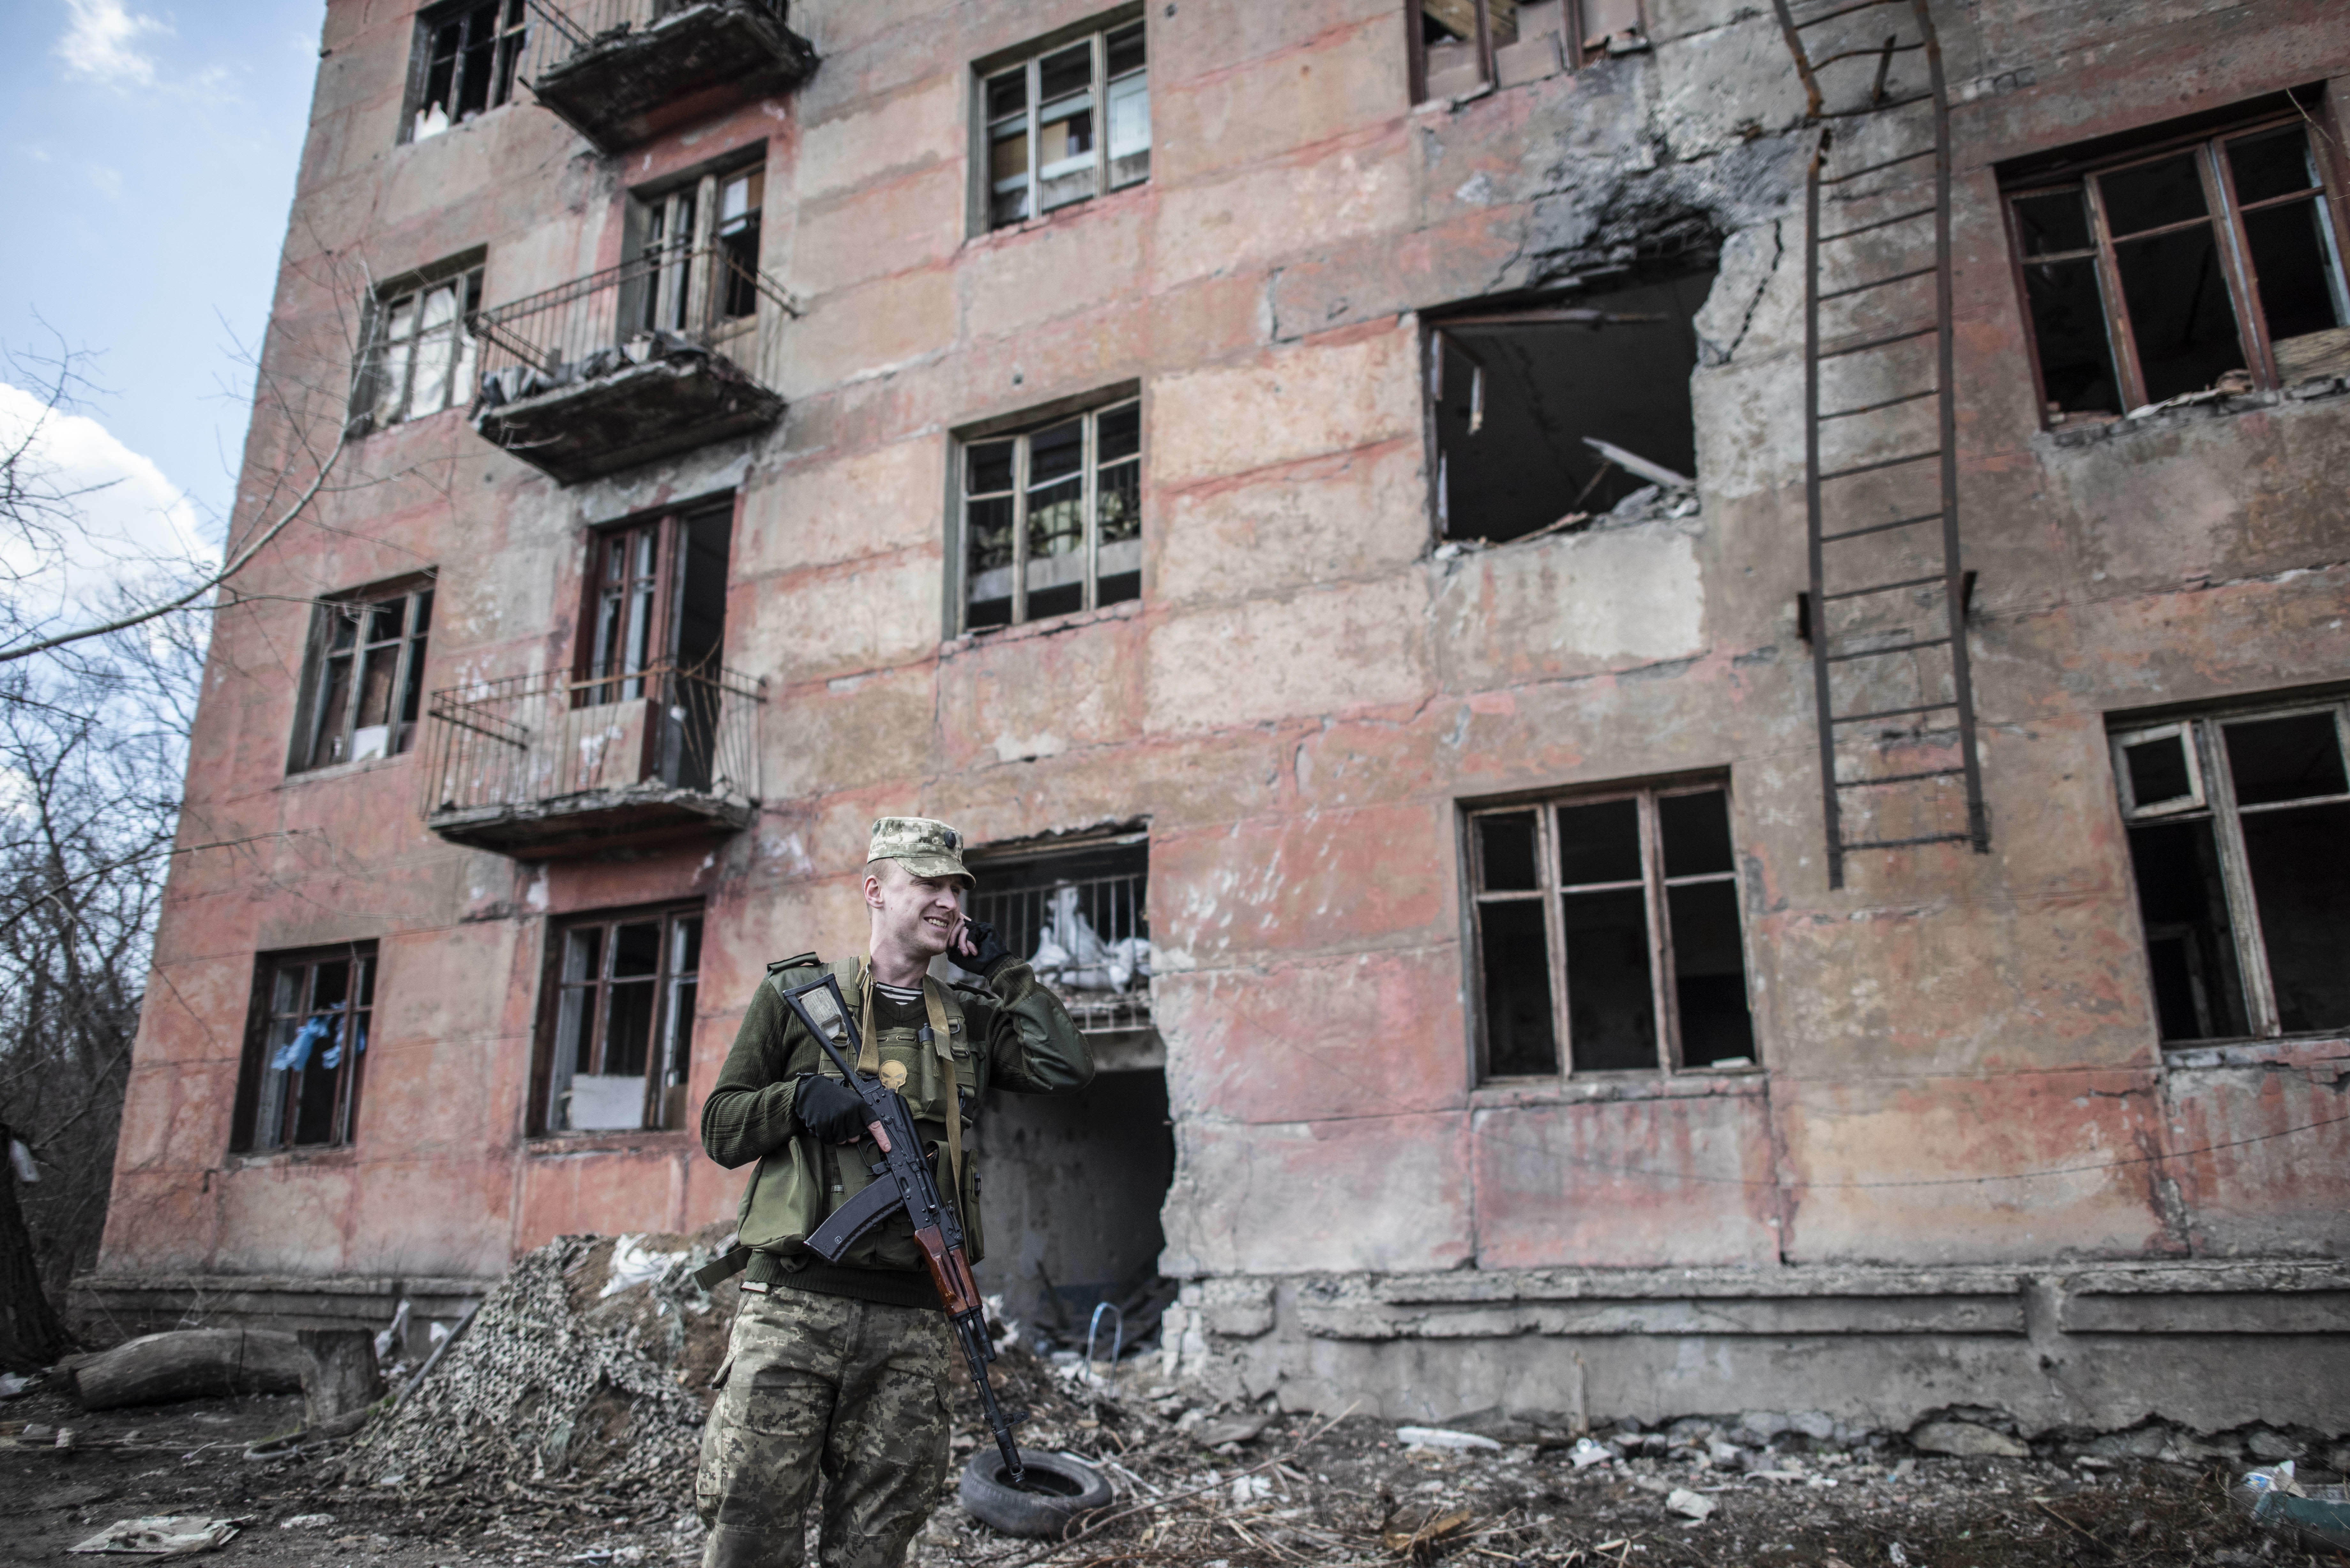 A Ukrainian solder speaks by phone in front of a destroyed house as he patrols in the village of Zolote 4, eastern Ukraine, Friday, March 29, 2019. Five years after a deadly separatist conflict in eastern Ukraine, the front line between government forces and Russia-backed separatists has become a de-facto border, cutting off a generation of first-time voters from Sunday's presidential election. (AP Photo/Evgeniy Maloletka)